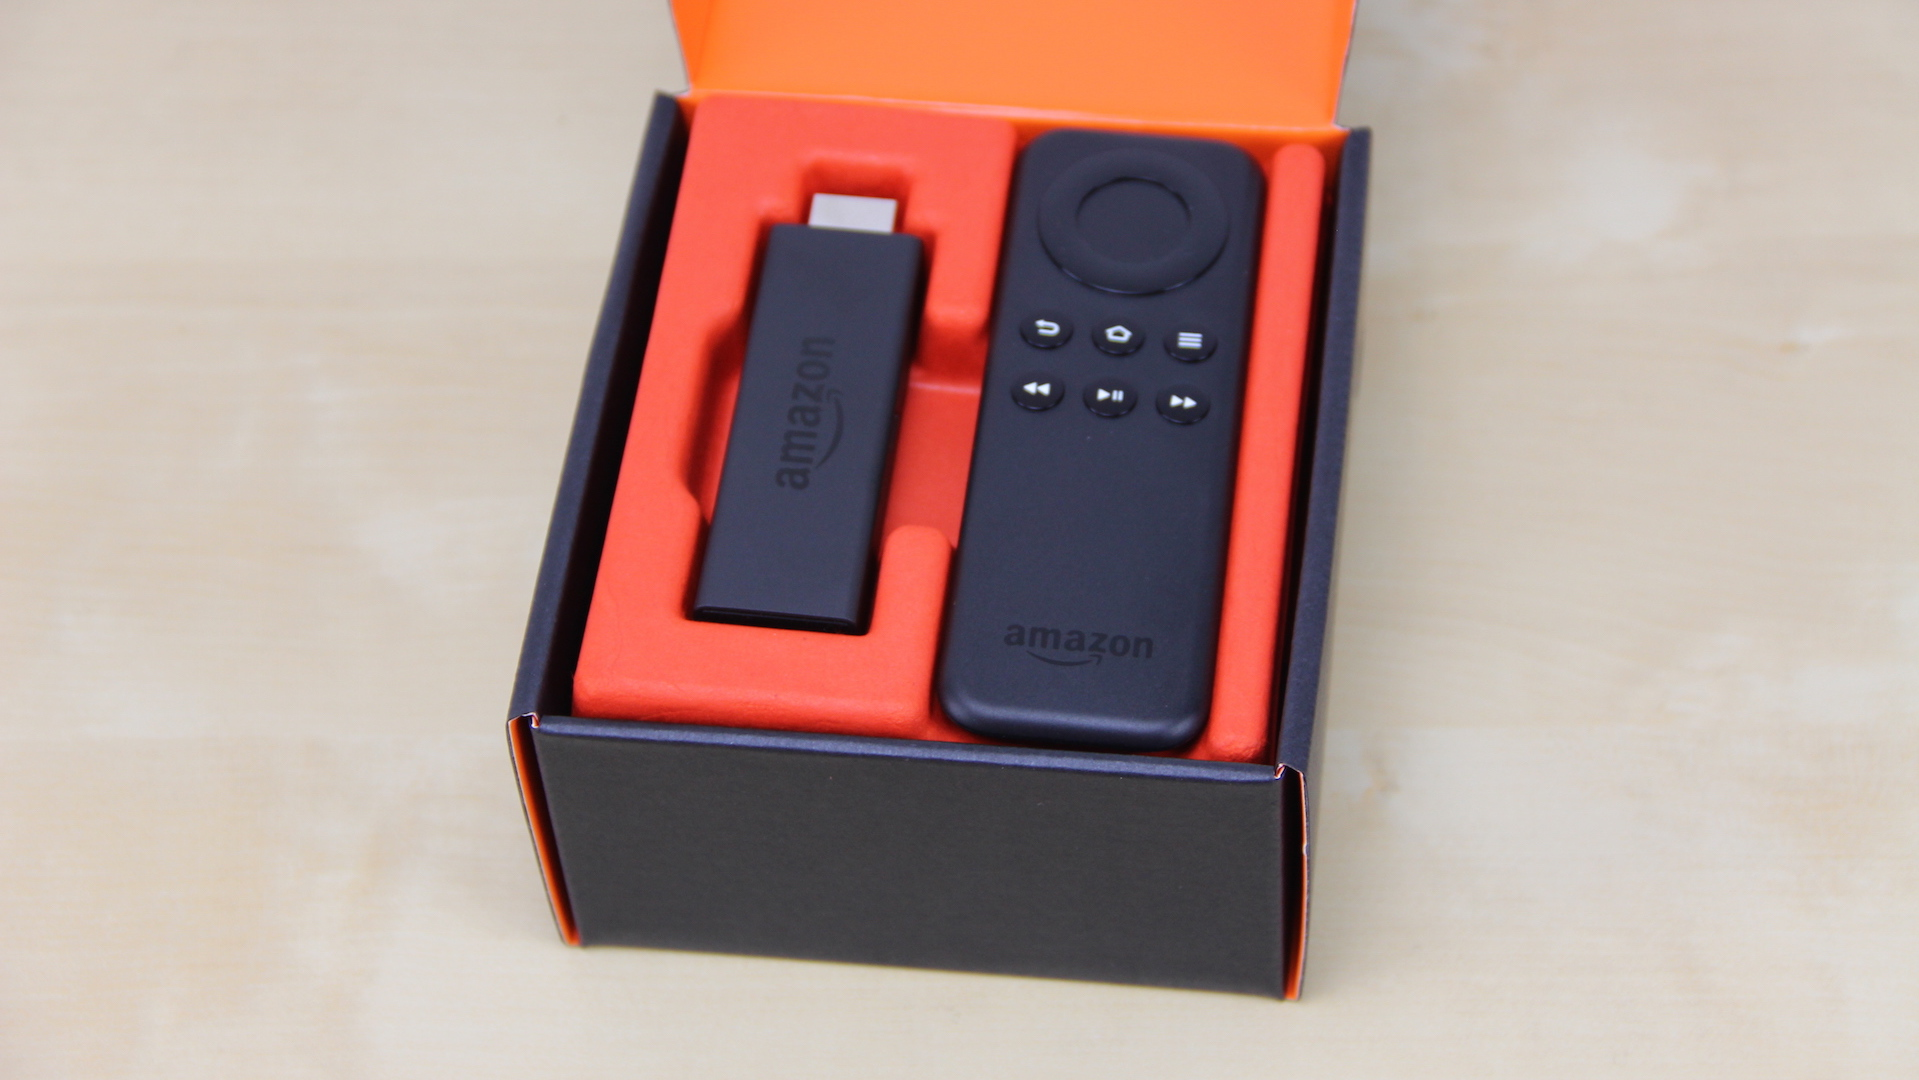 Amazon Fire TV Stick im Test NewGadgets.de #C93202 1919 1080